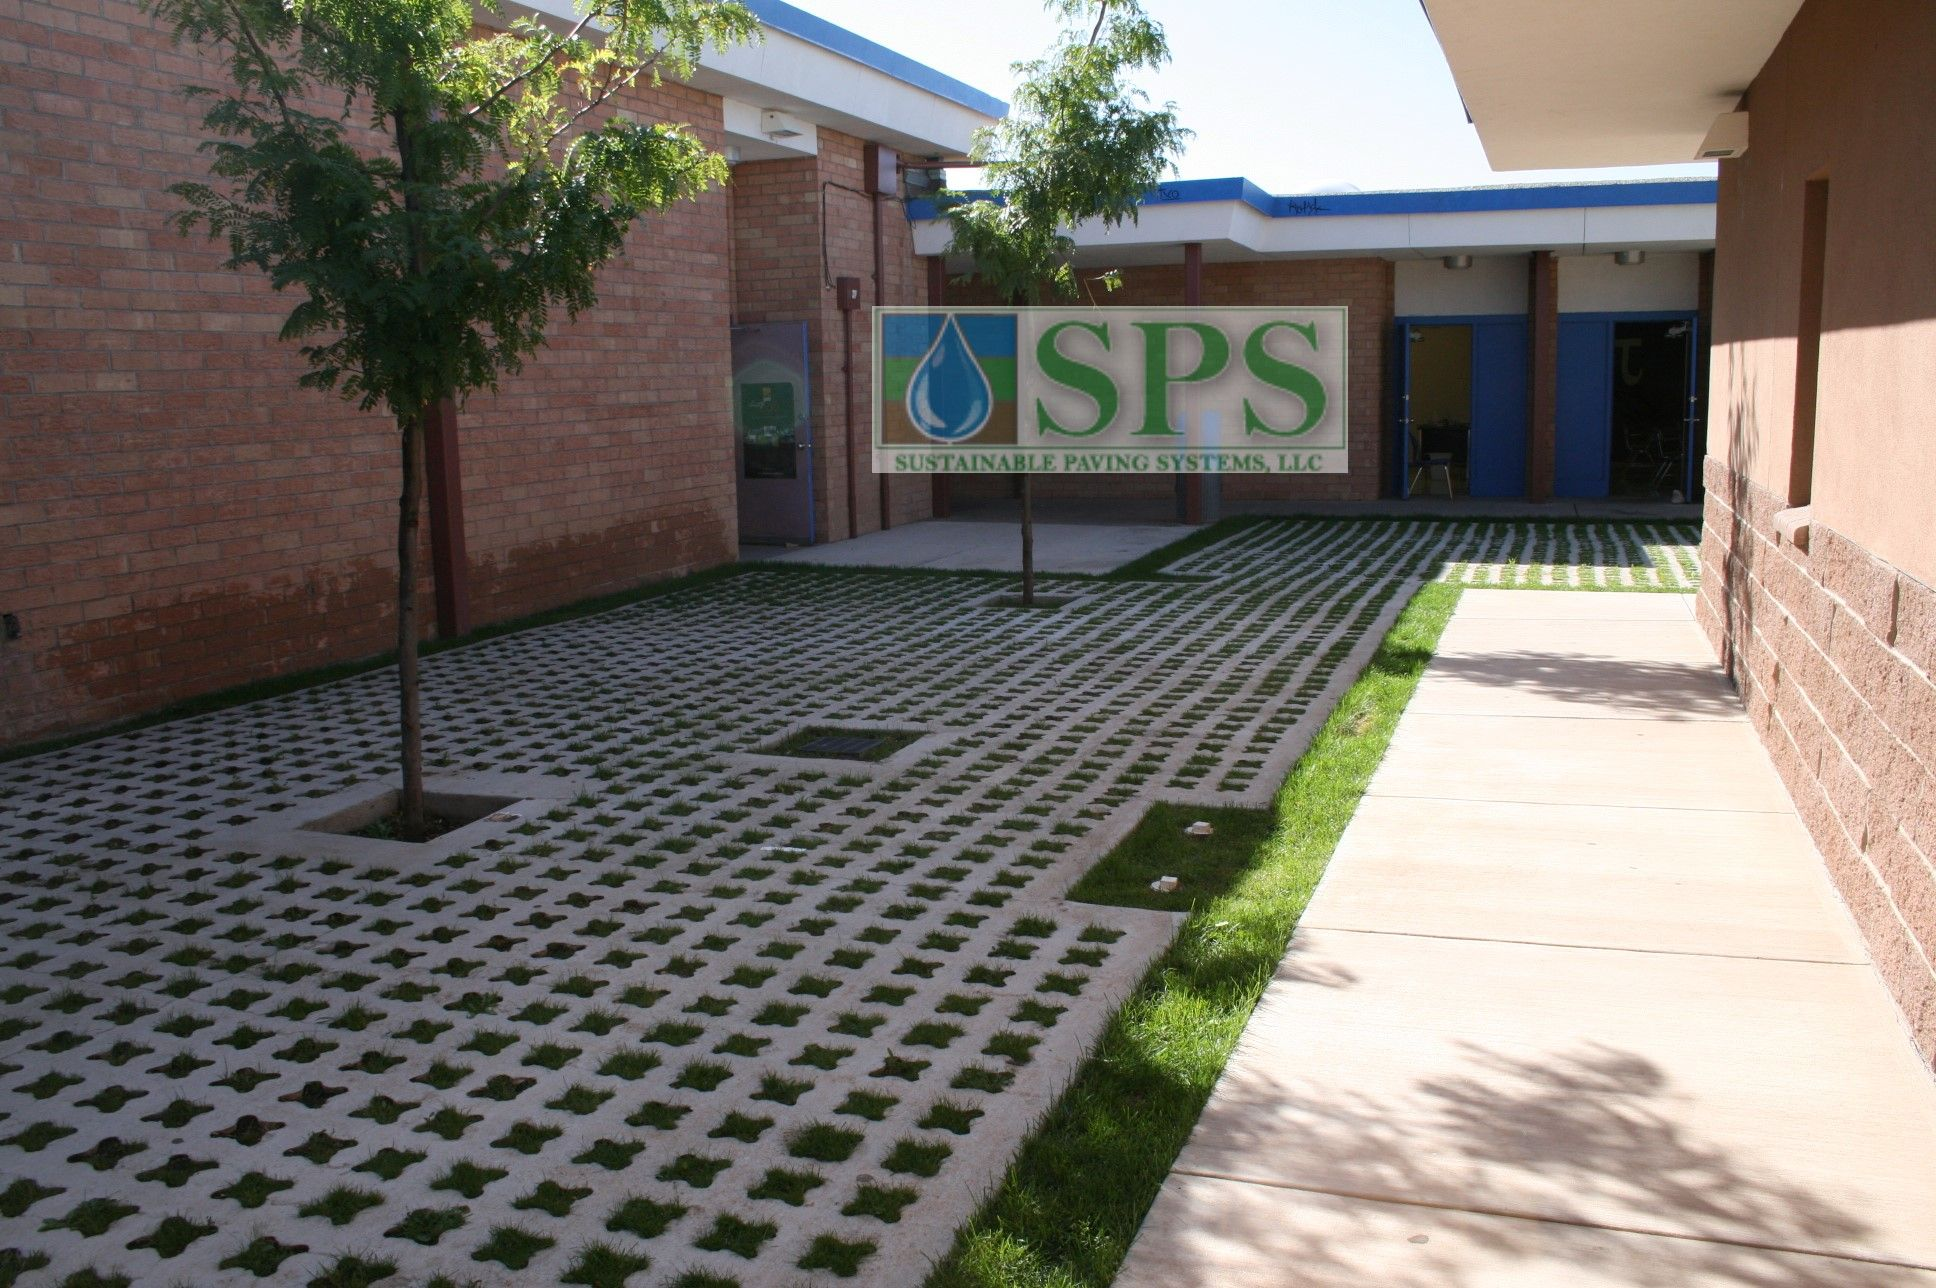 Grasscrete Partially Concealed System At St Mikes School View Of Courtyard Storm Water Management_05